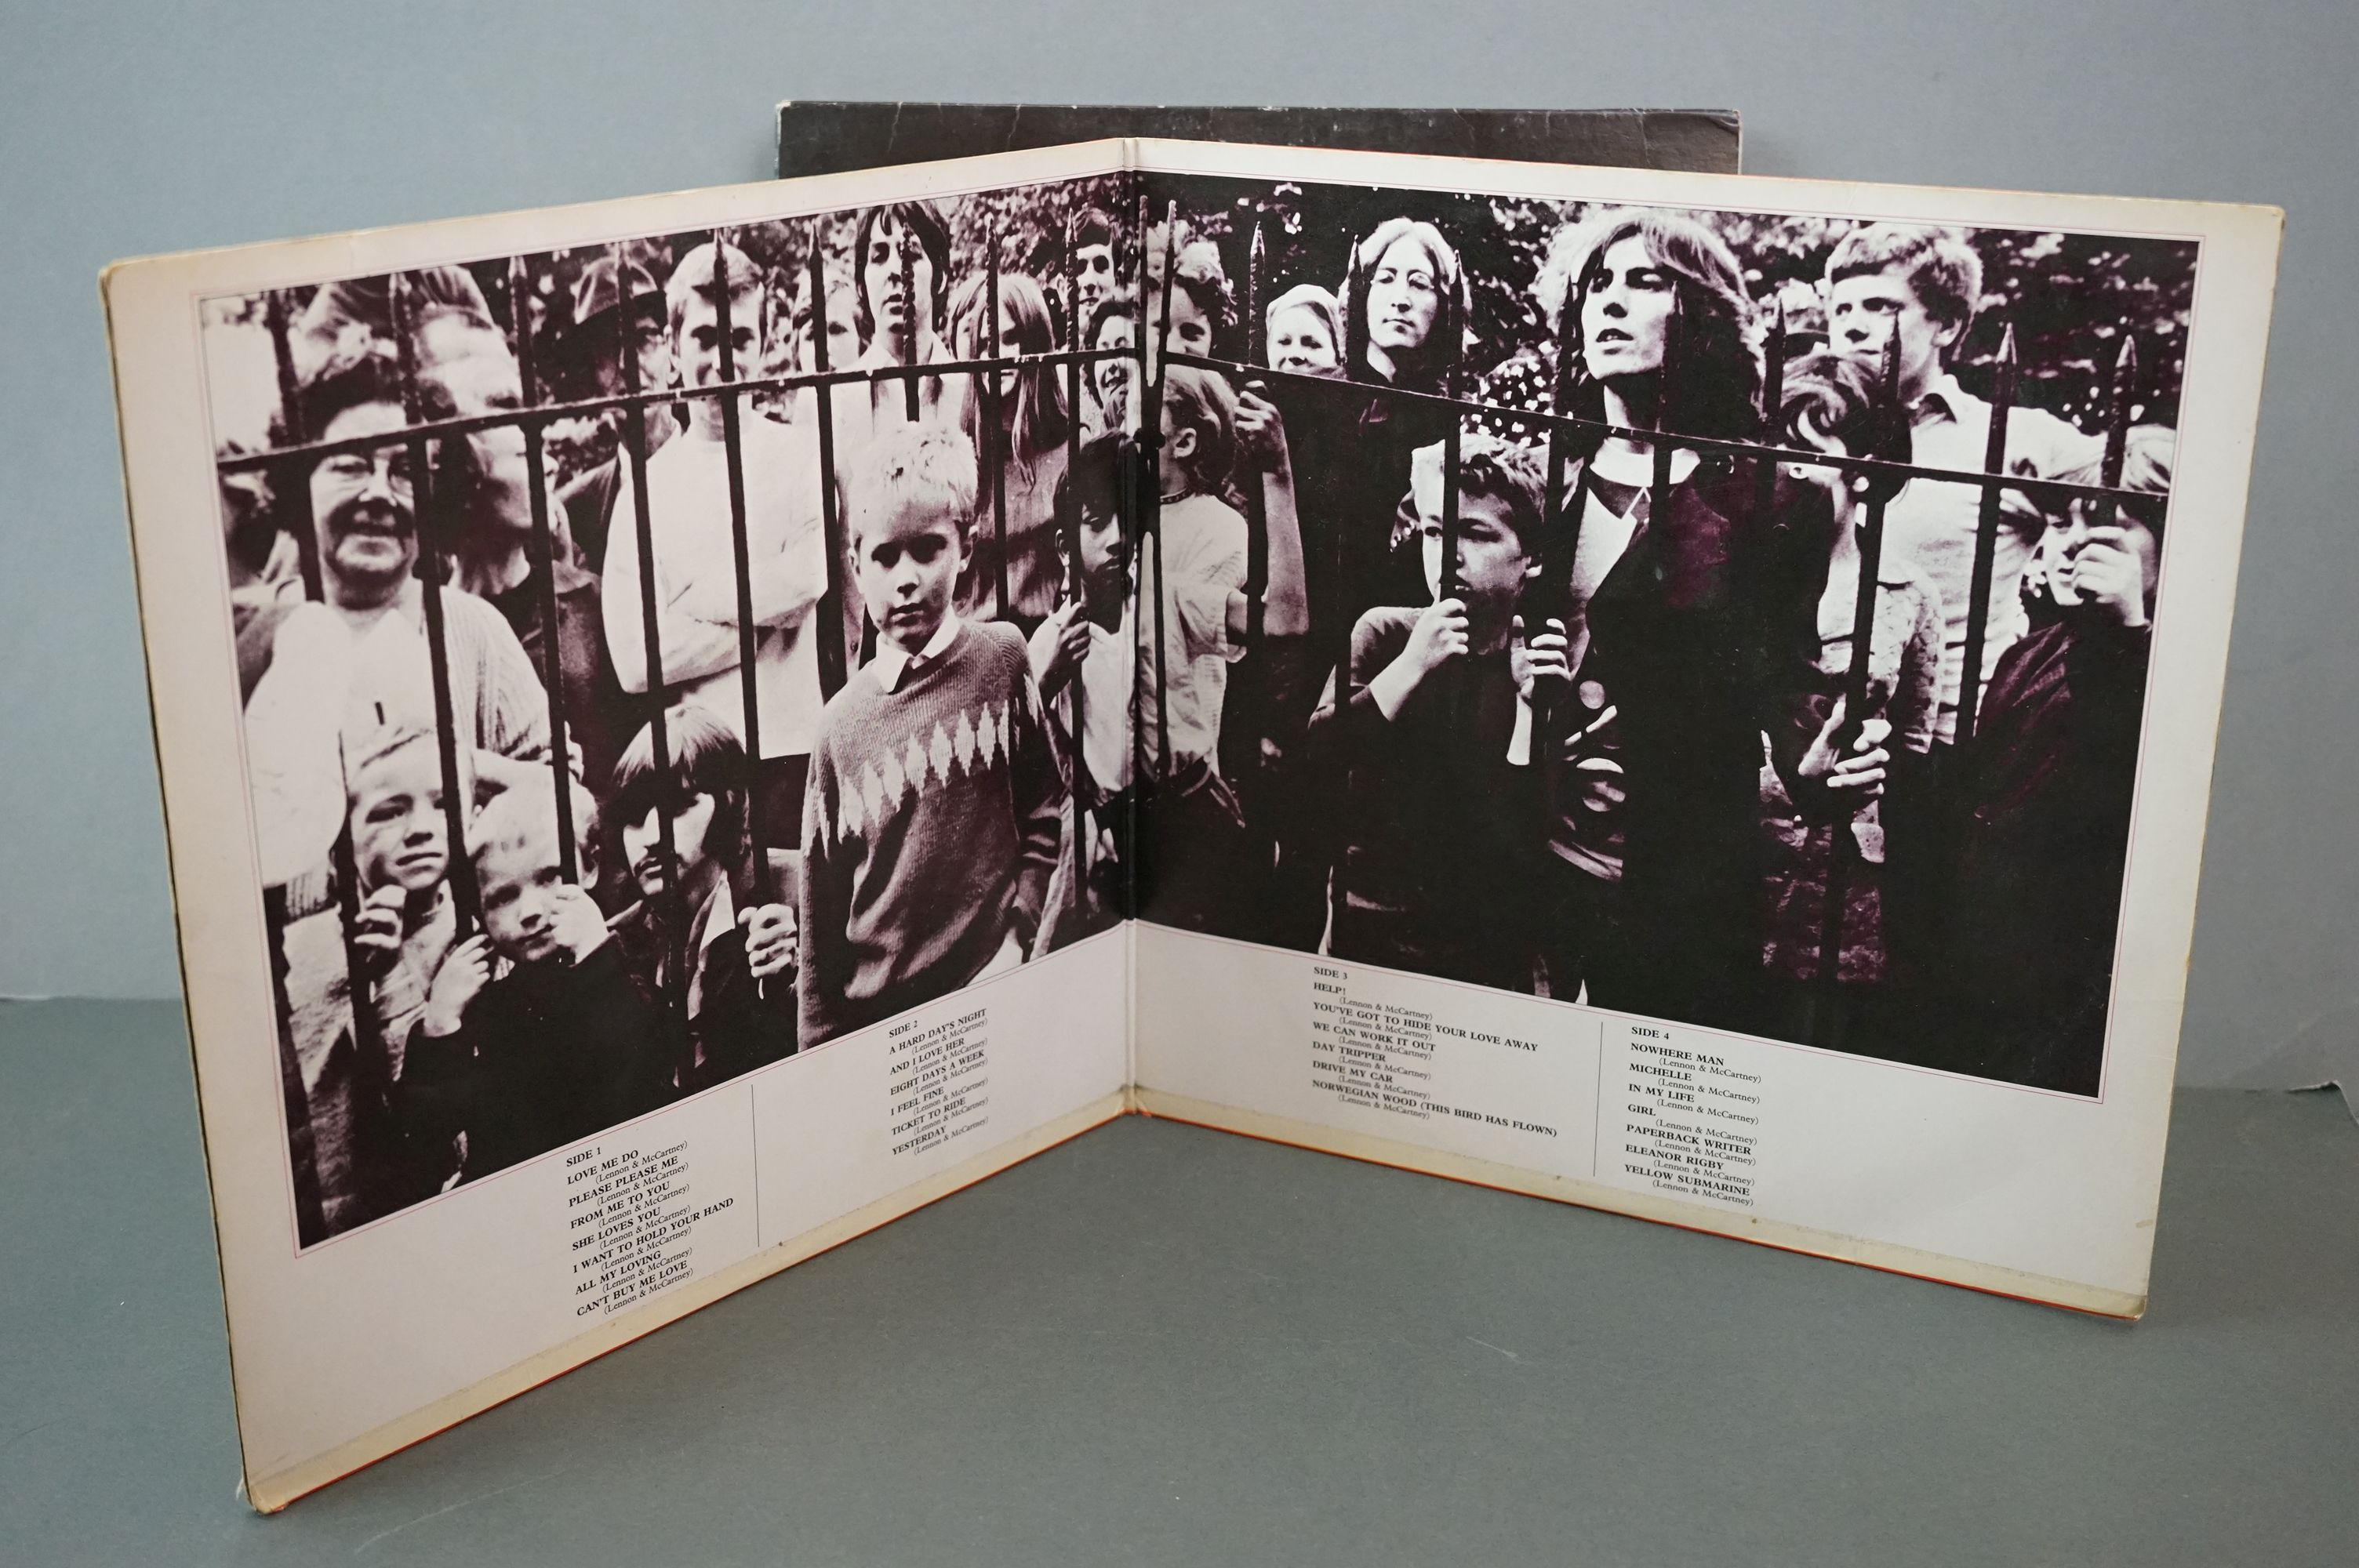 Vinyl - The Beatles and band members LPs to include 1962-1966 and 1967-1970 (black vinyl), Wings - Image 7 of 11